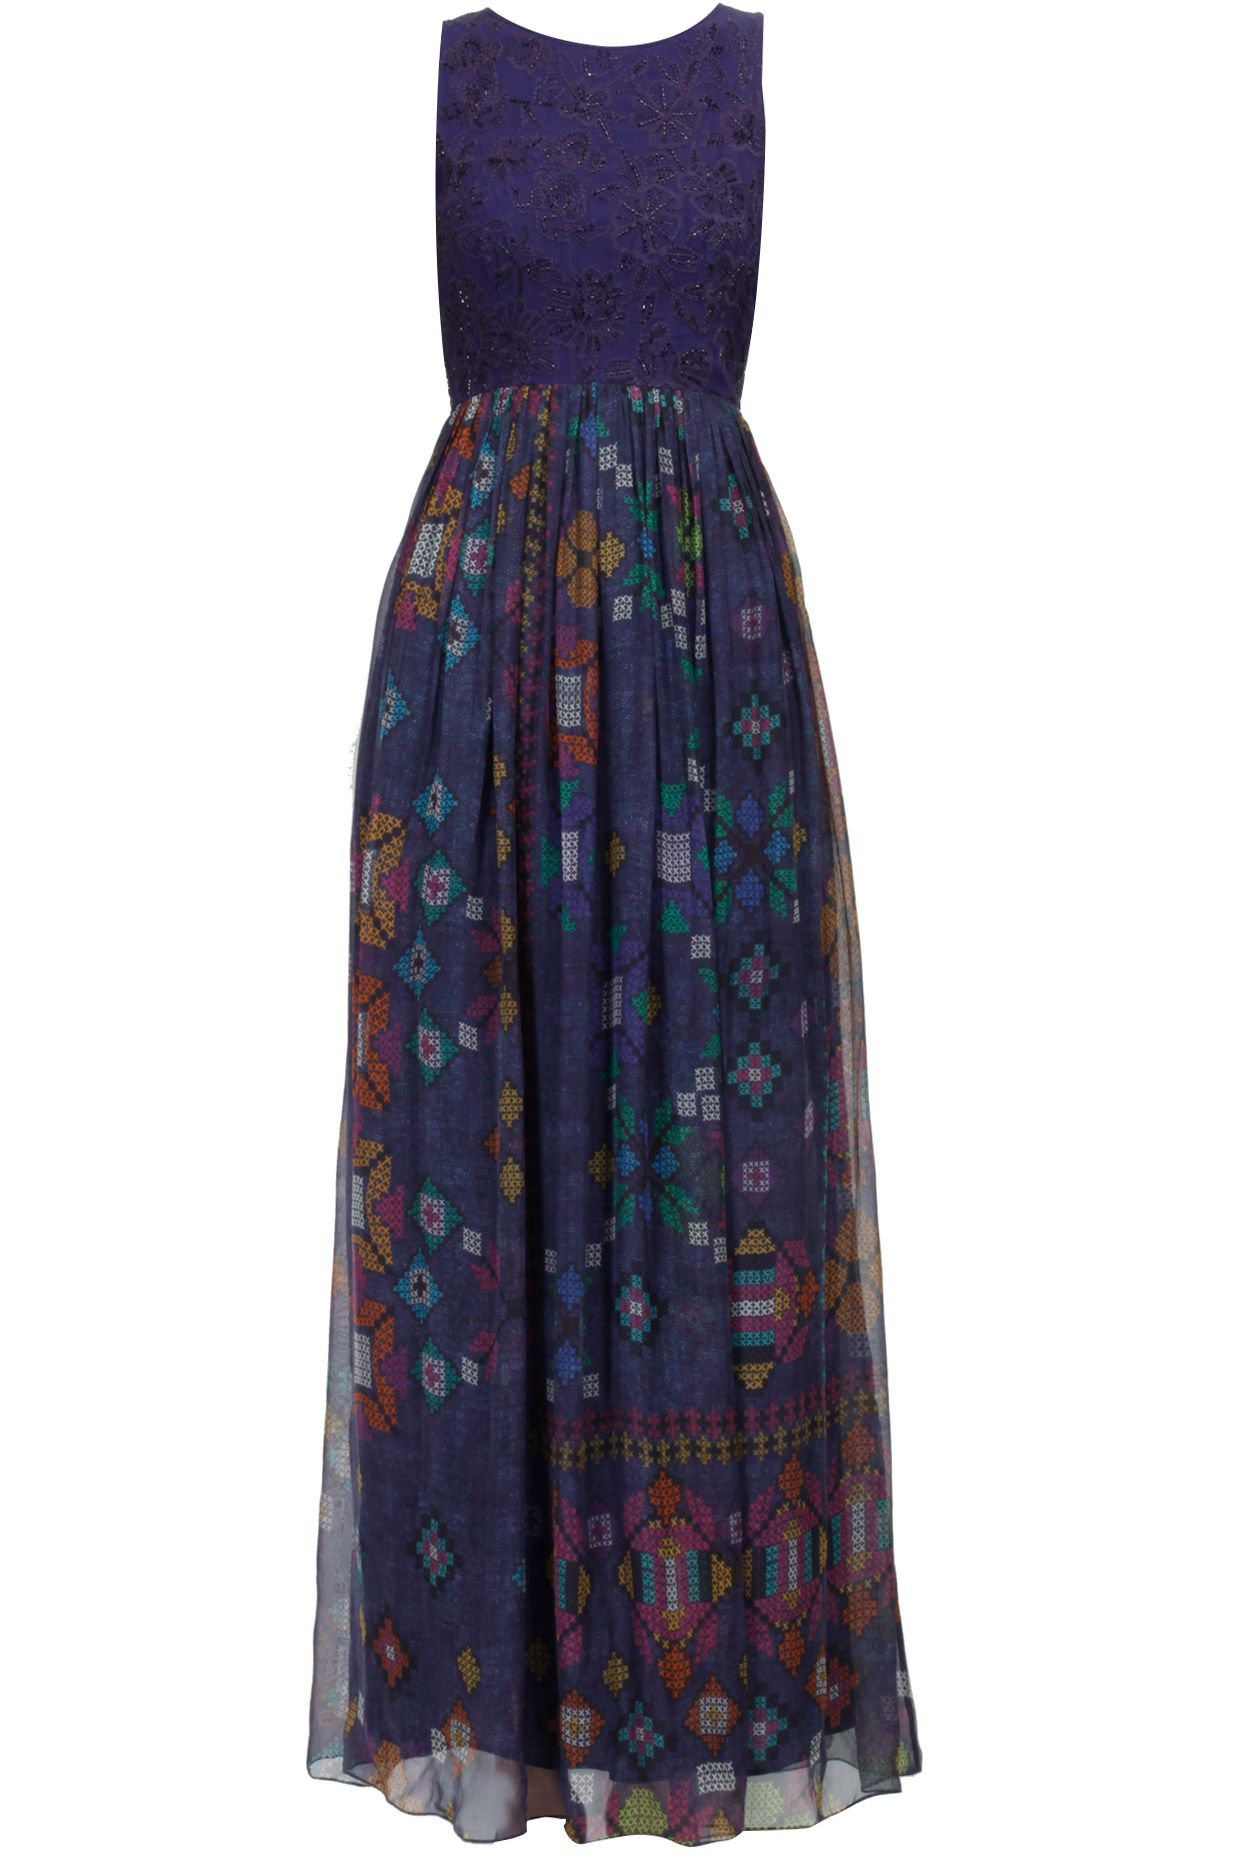 Blue cross stitch embroidered long dress available only at perniaus